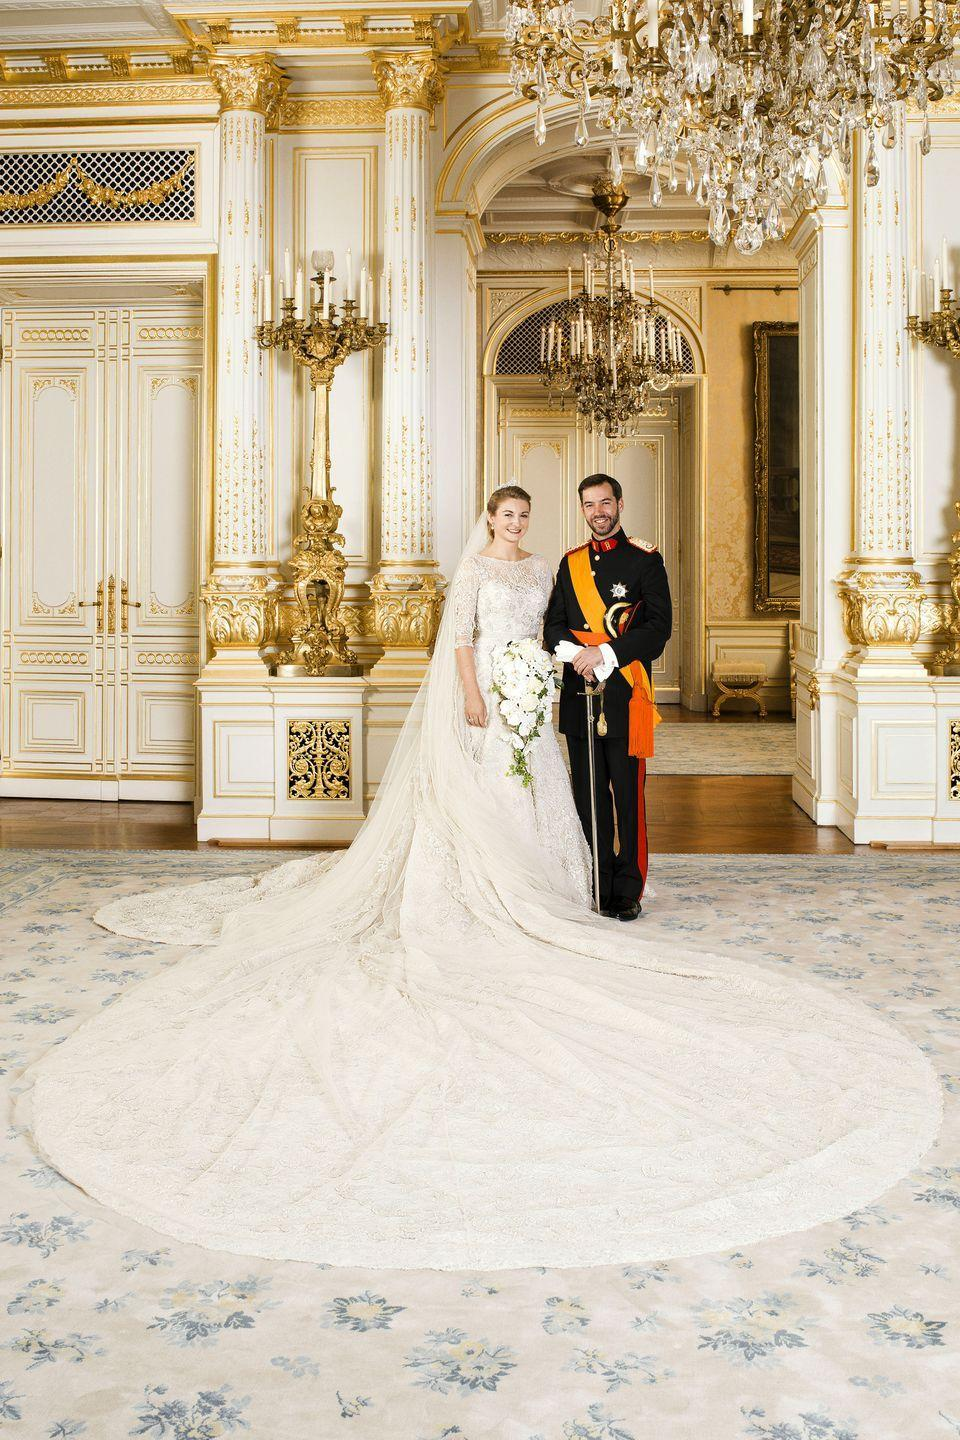 "<p>When asked if she believes in Prince Charming <a href=""http://royalweddings.hellomagazine.com/guillaume-luxembourg-stephanie-lannoy/news/201210081205/prince-guillaume-stephanie-interview/"" rel=""nofollow noopener"" target=""_blank"" data-ylk=""slk:during an interview"" class=""link rapid-noclick-resp"">during an interview</a> leading up to this couple's 2012 wedding, Stephanie Lannoy remarked, ""Not only do I believe in it, I also think I found it. I remember the day I met Guillaume I told a friend–who by the way is going to be maid of honor at our wedding–I had found an exceptional man with whom I shared many things in common. I really did not think such a man could exist. So of course I believe in Prince Charming.""</p>"